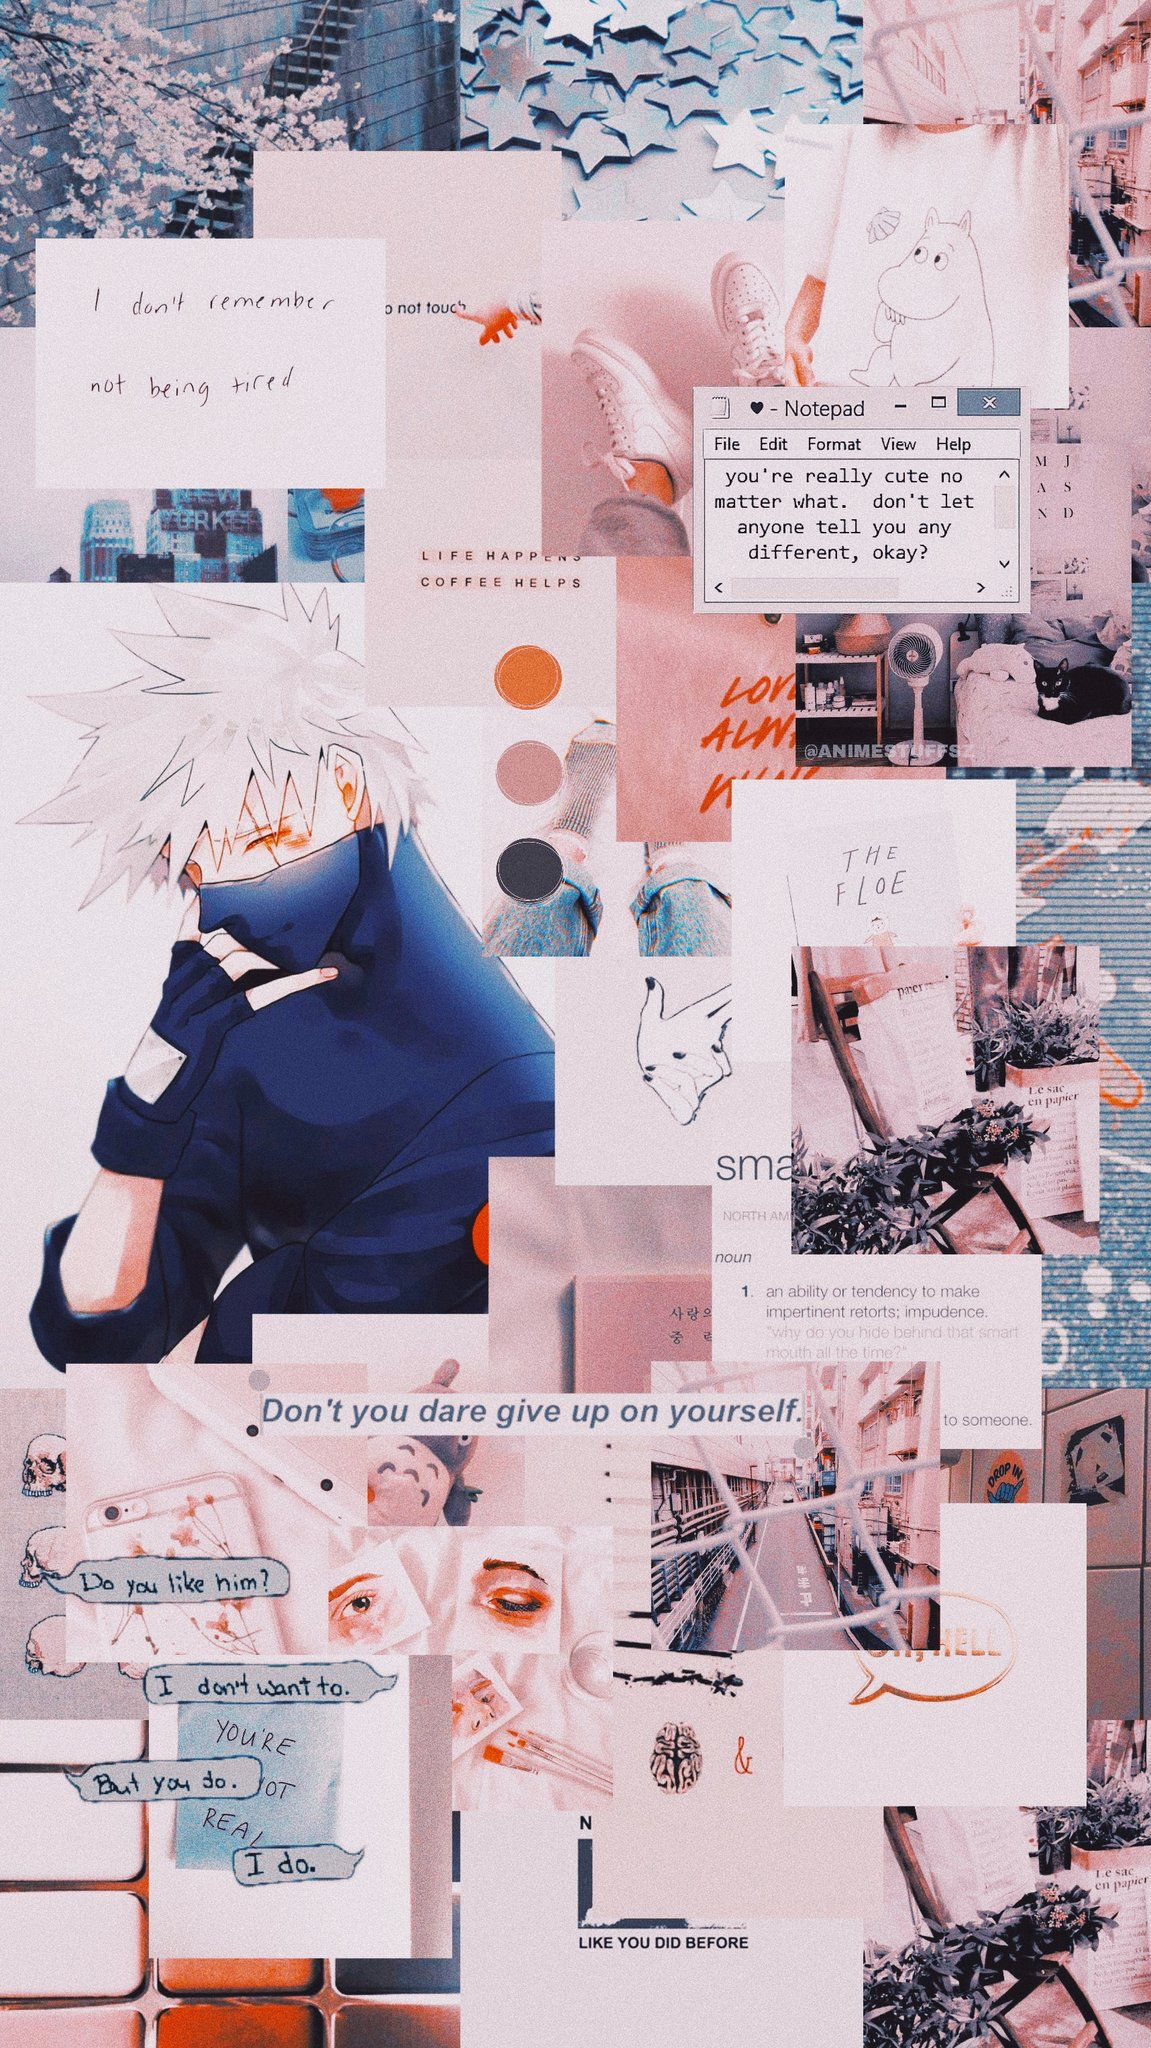 Pin By Toni On Stuff Lockscreens Anime Wallpaper Naruto Wallpaper Anime Naruto